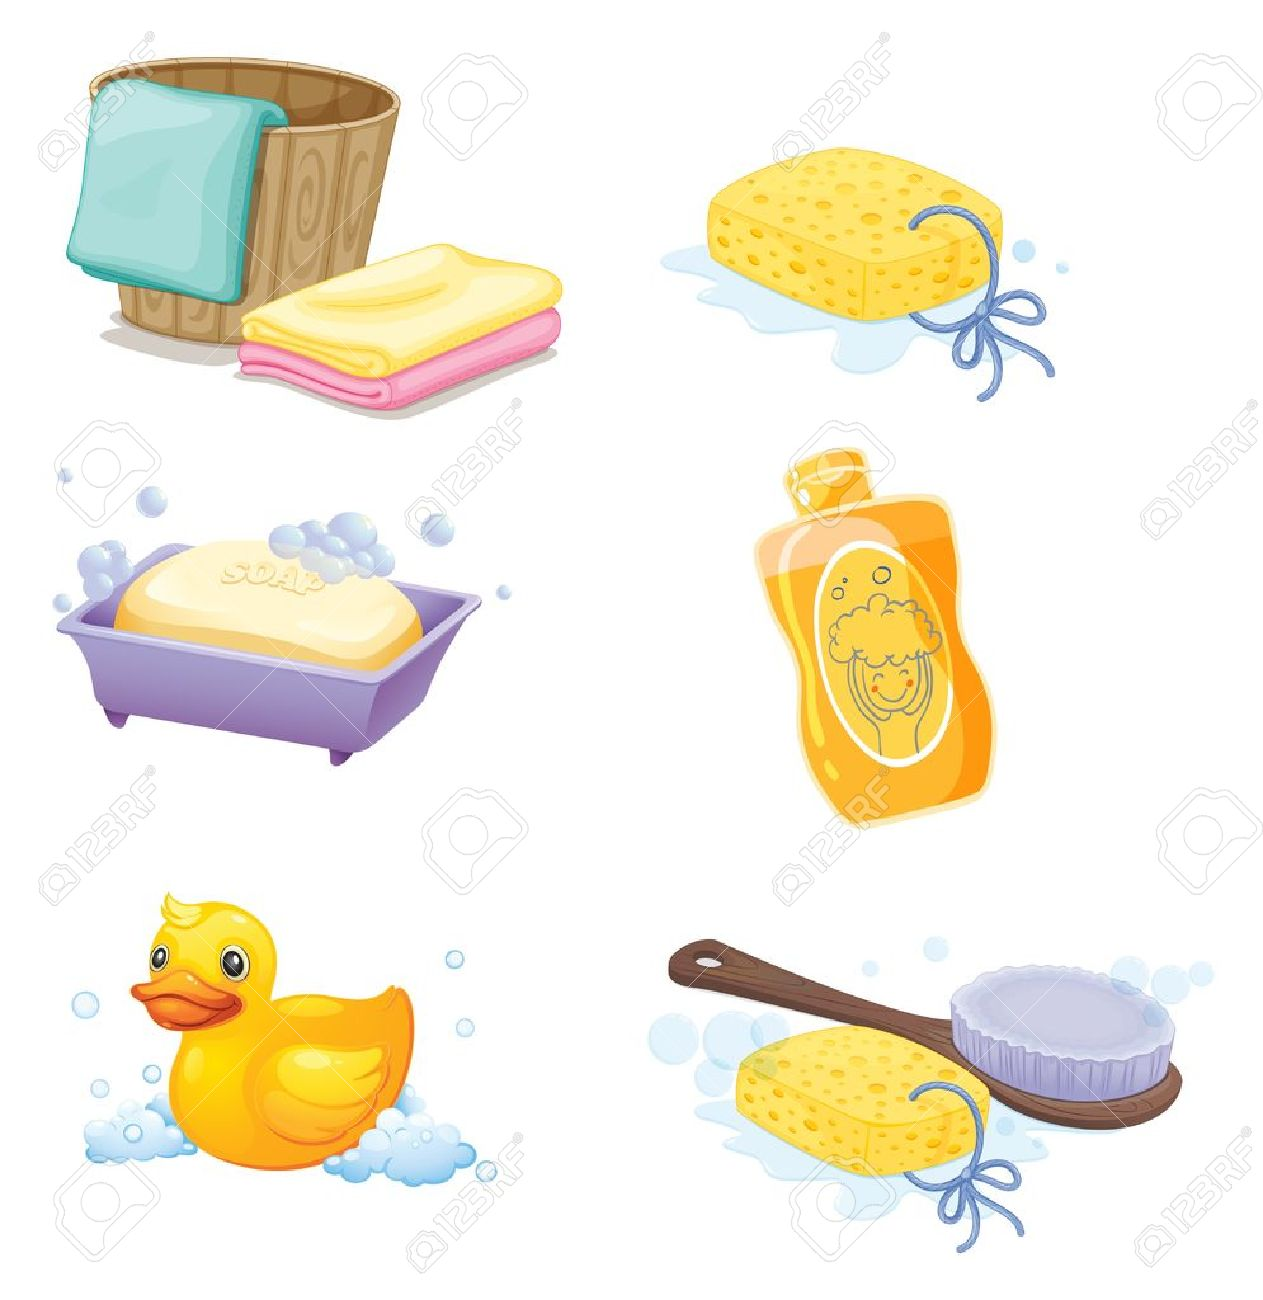 of the bathroom accessories on a white background